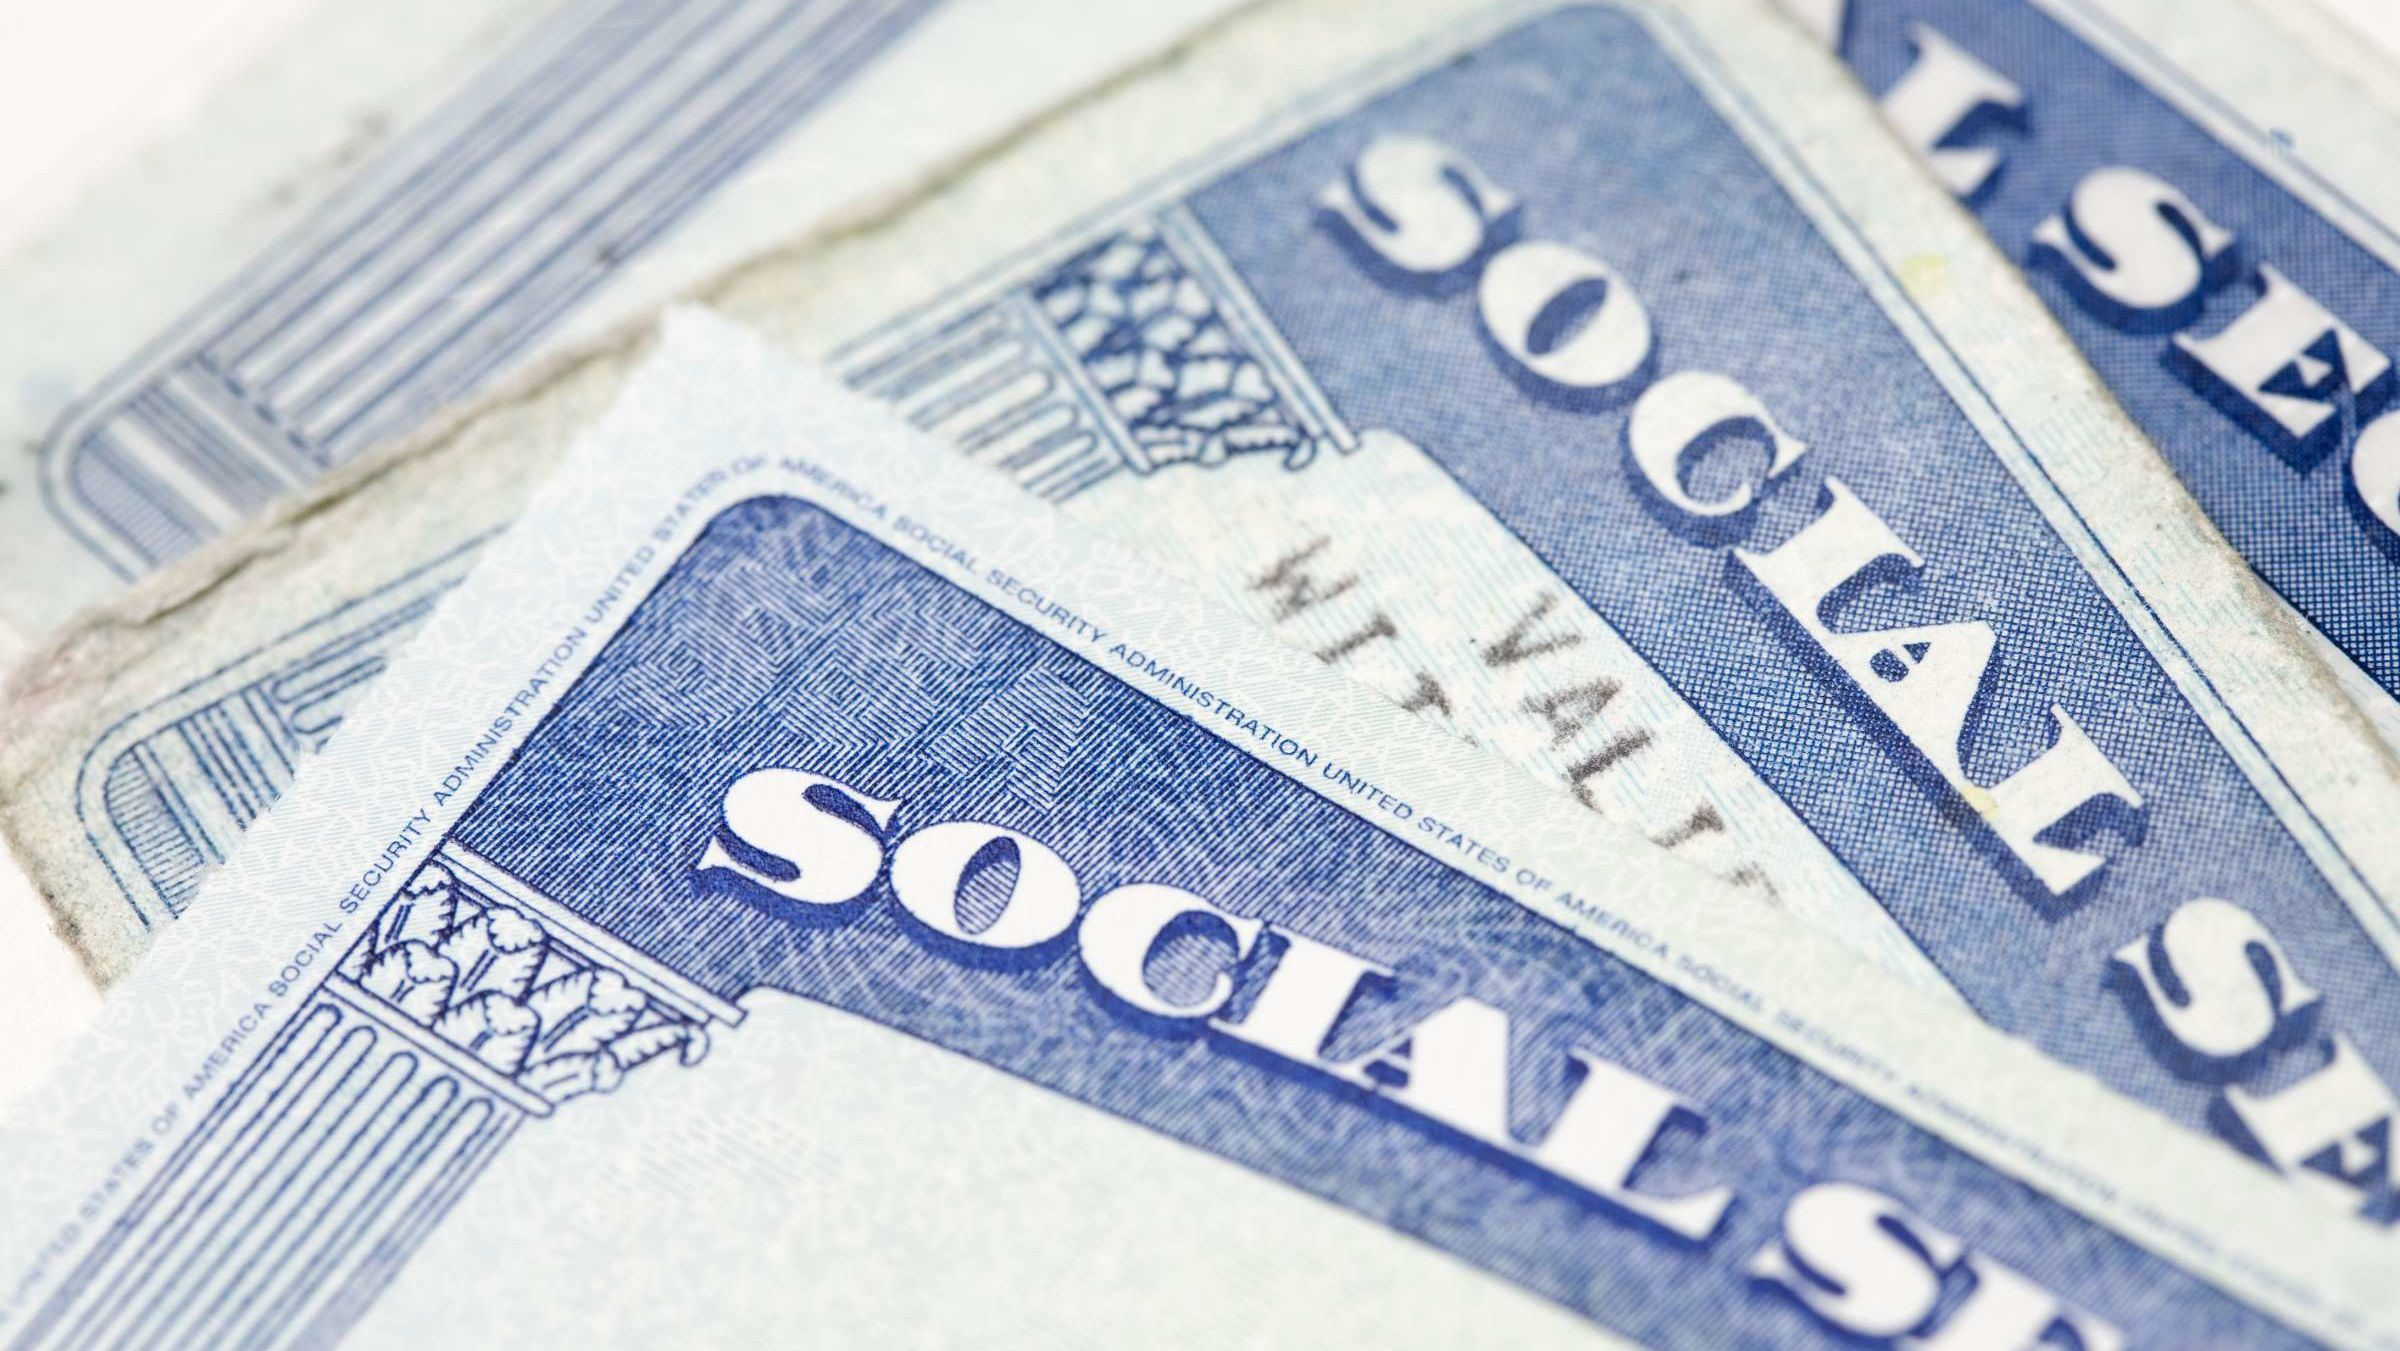 Why You Should Never Laminate Your Social Security Card